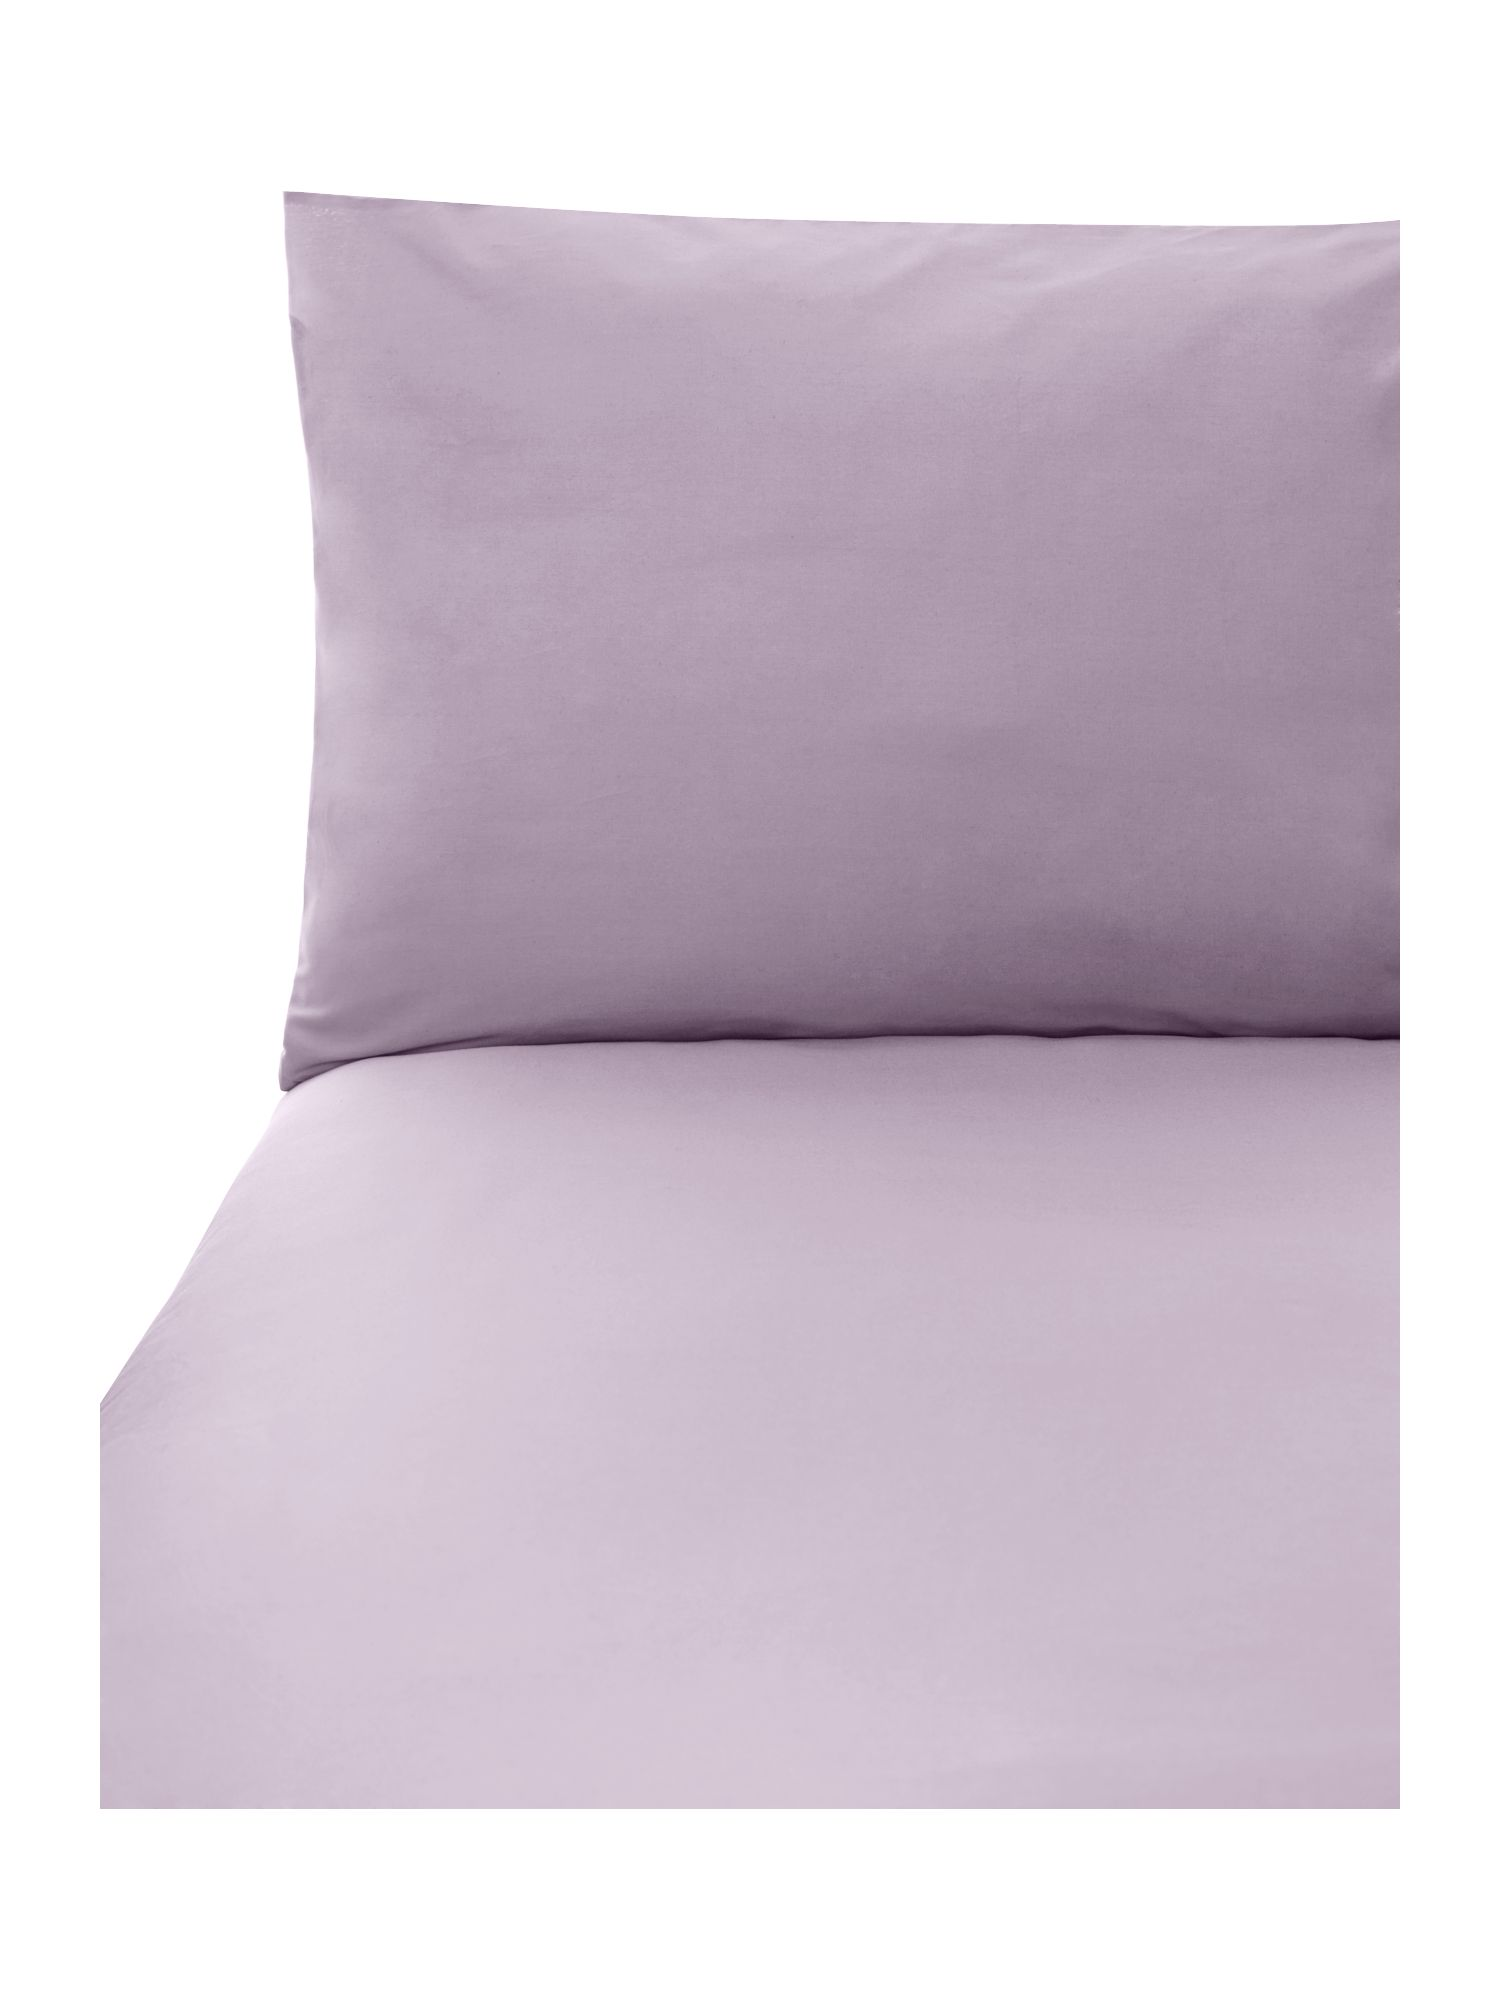 Lilac 100% cotton oxford pillowcase